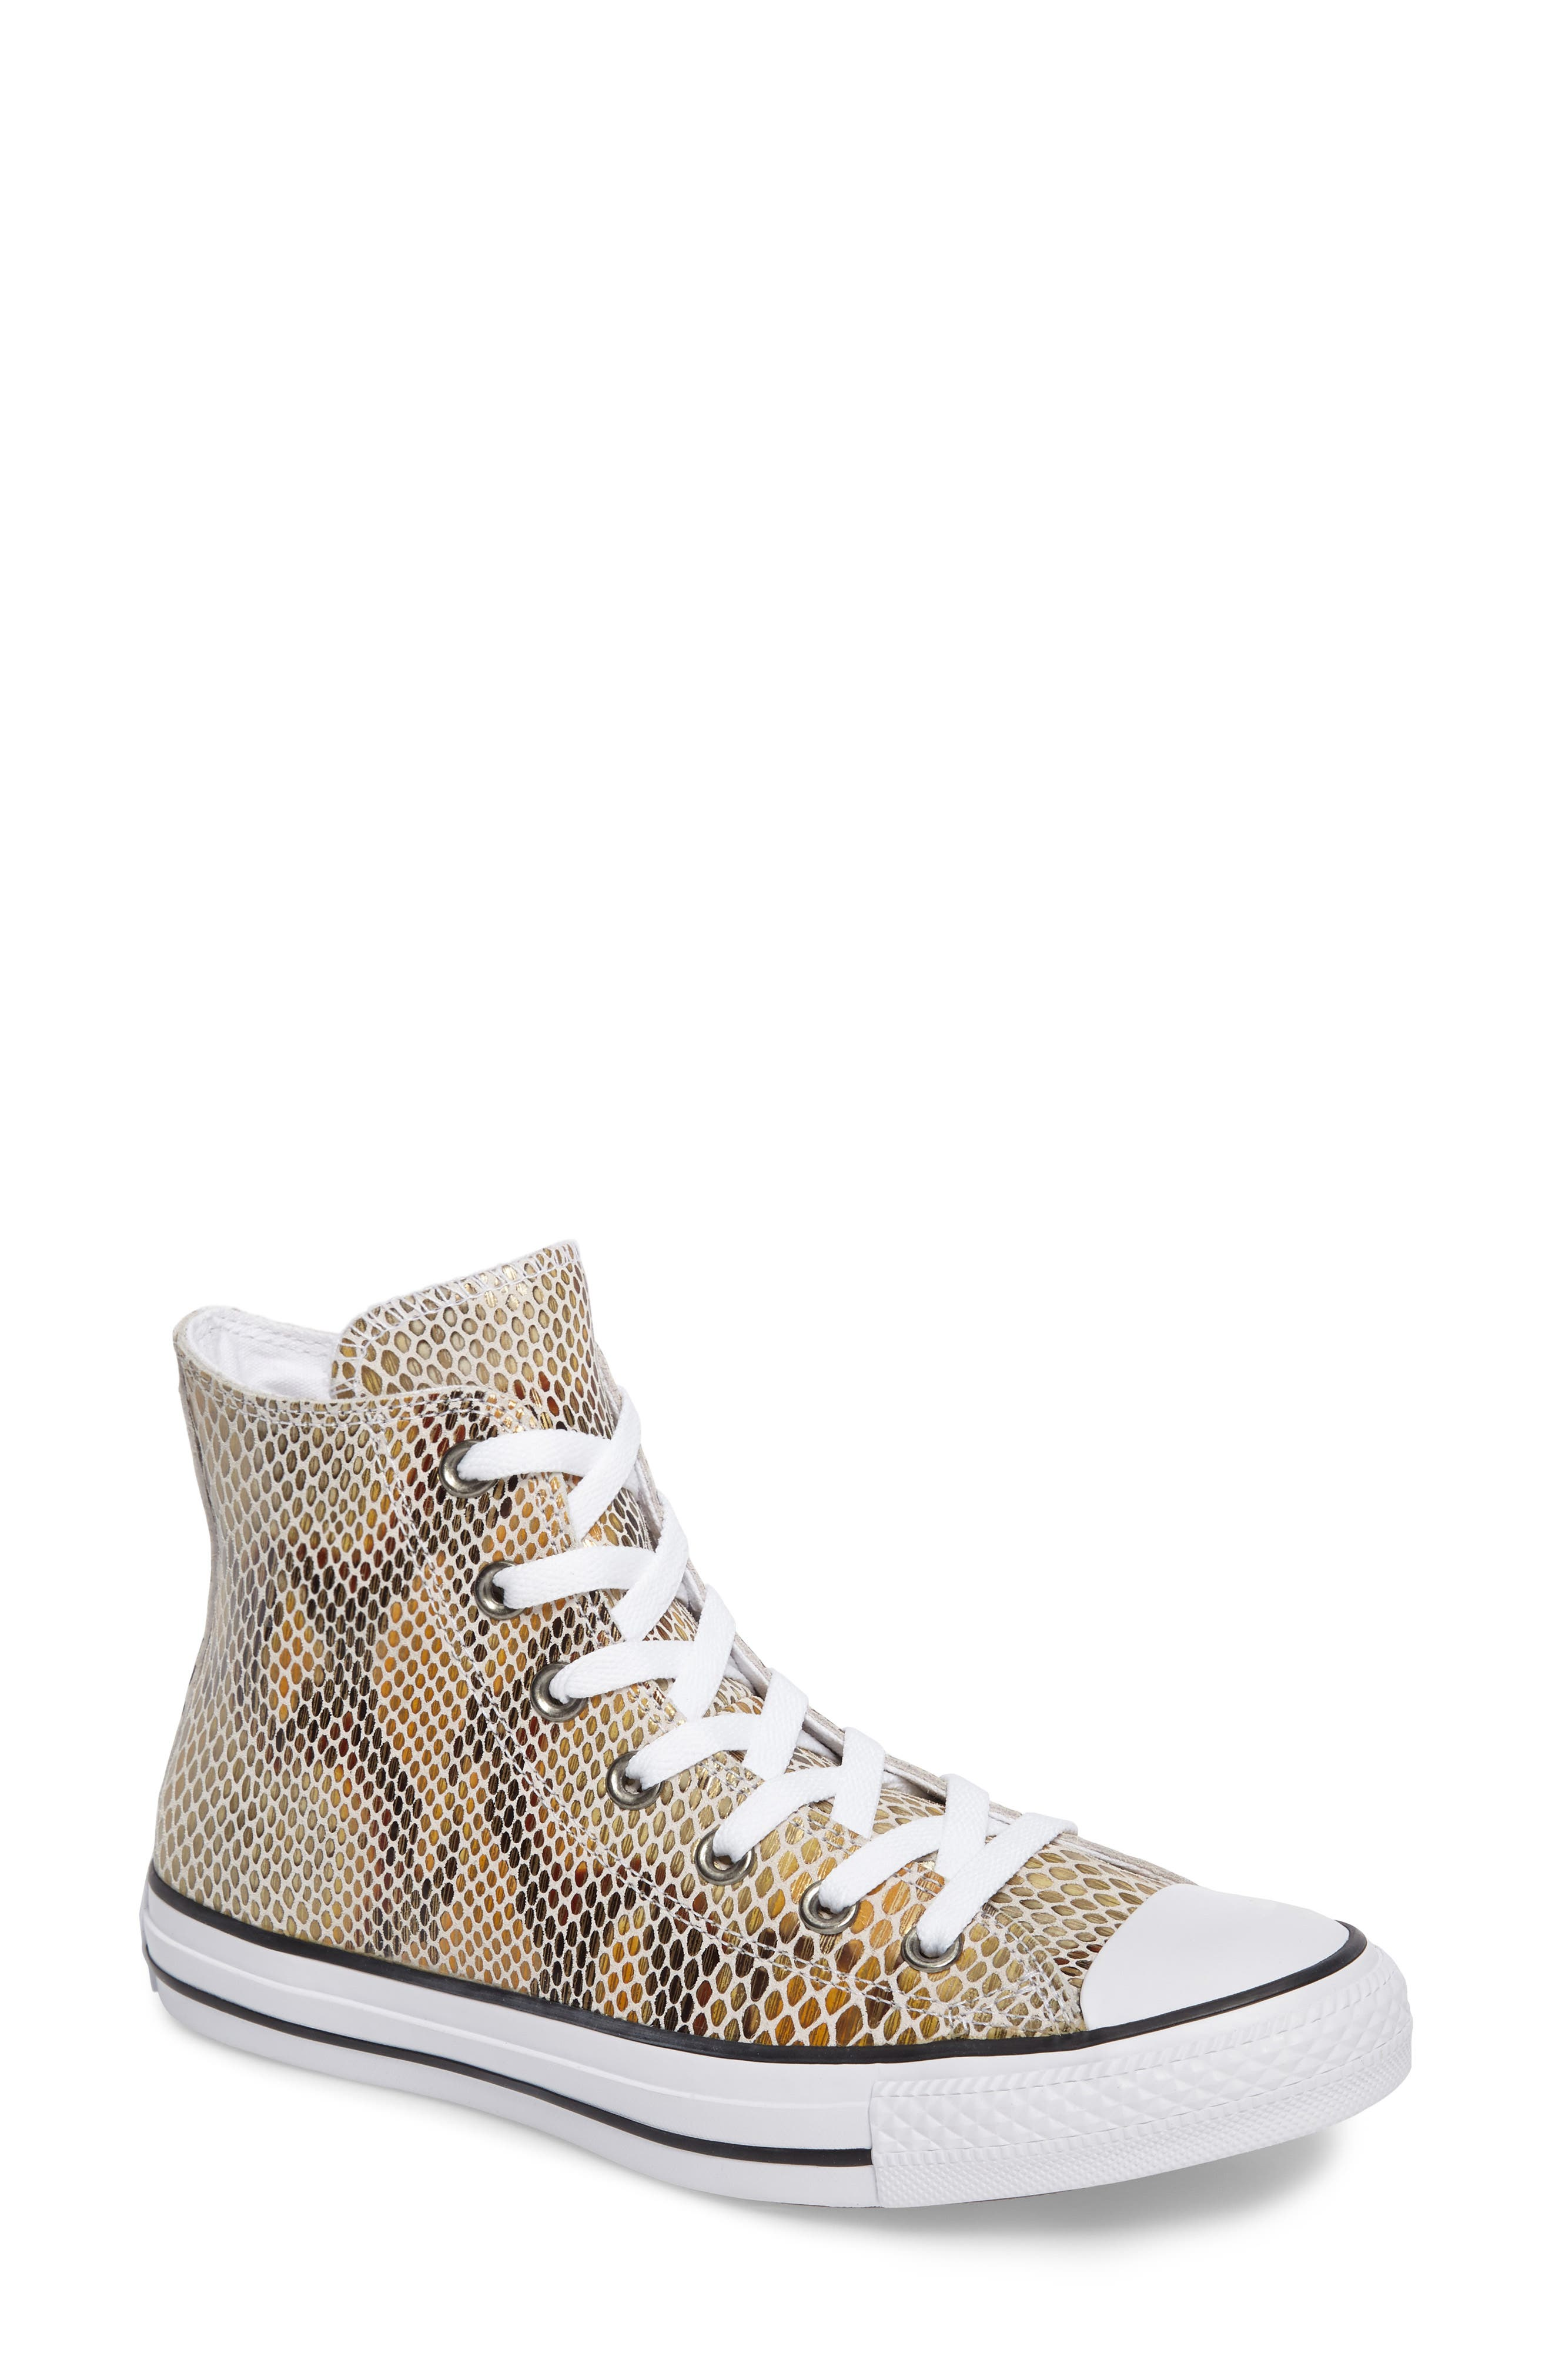 Chuck Taylor<sup>®</sup> All Star<sup>®</sup> Snake Embossed High Top Sneaker,                         Main,                         color, Clay